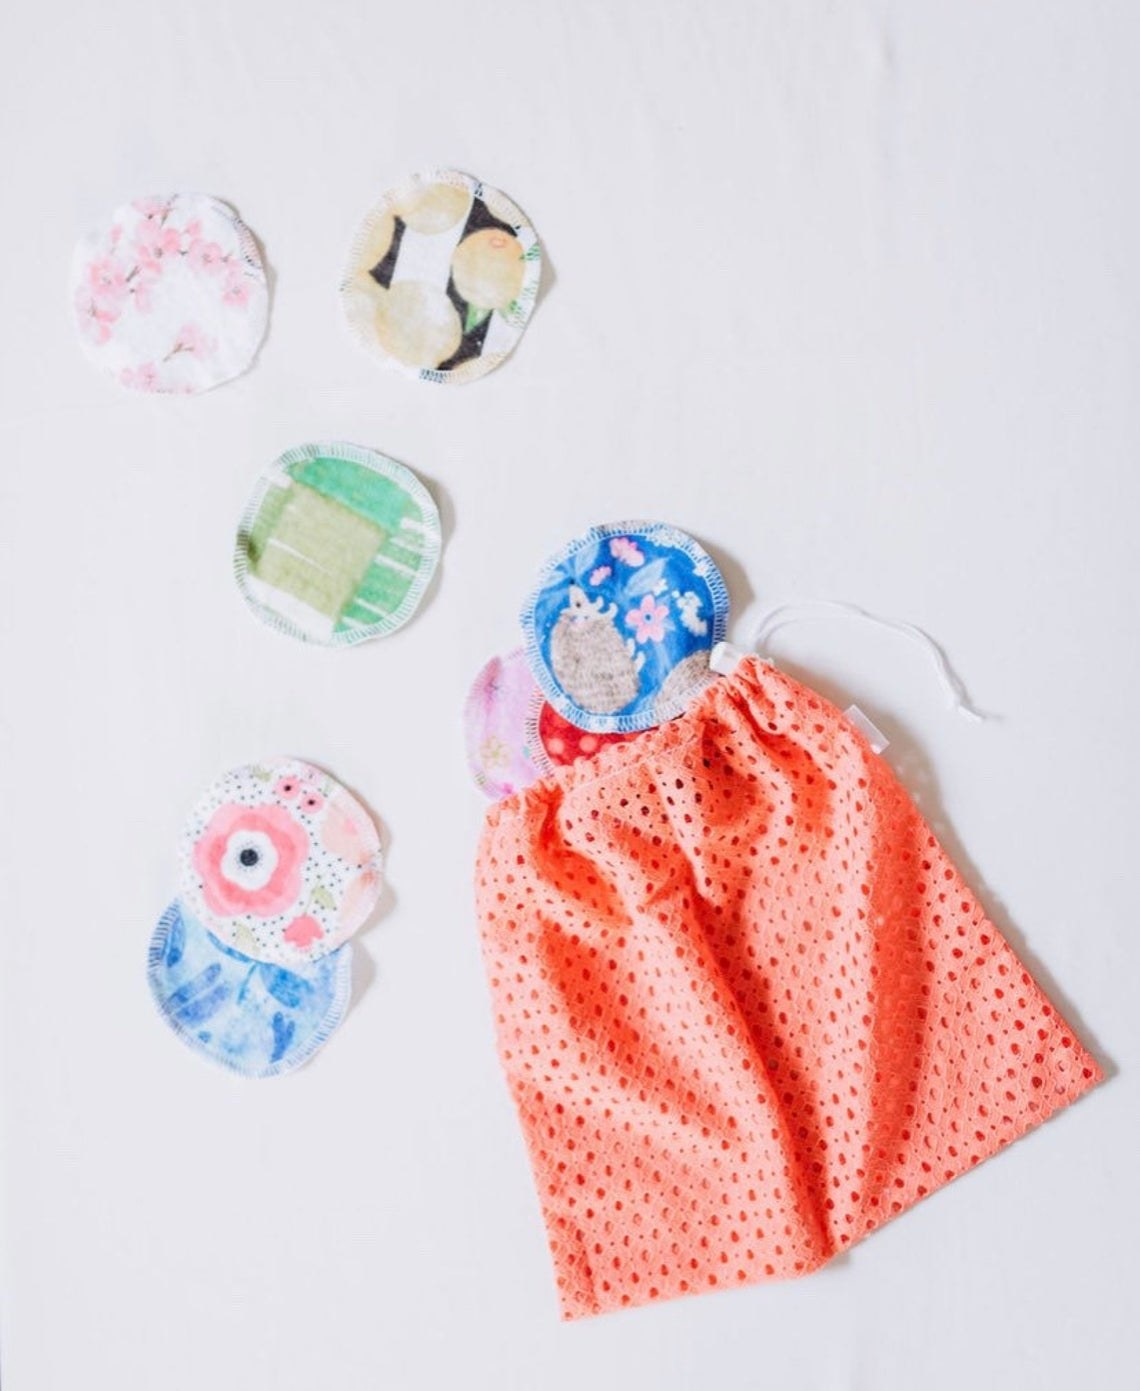 Six cotton rounds next to a small drawstring bag